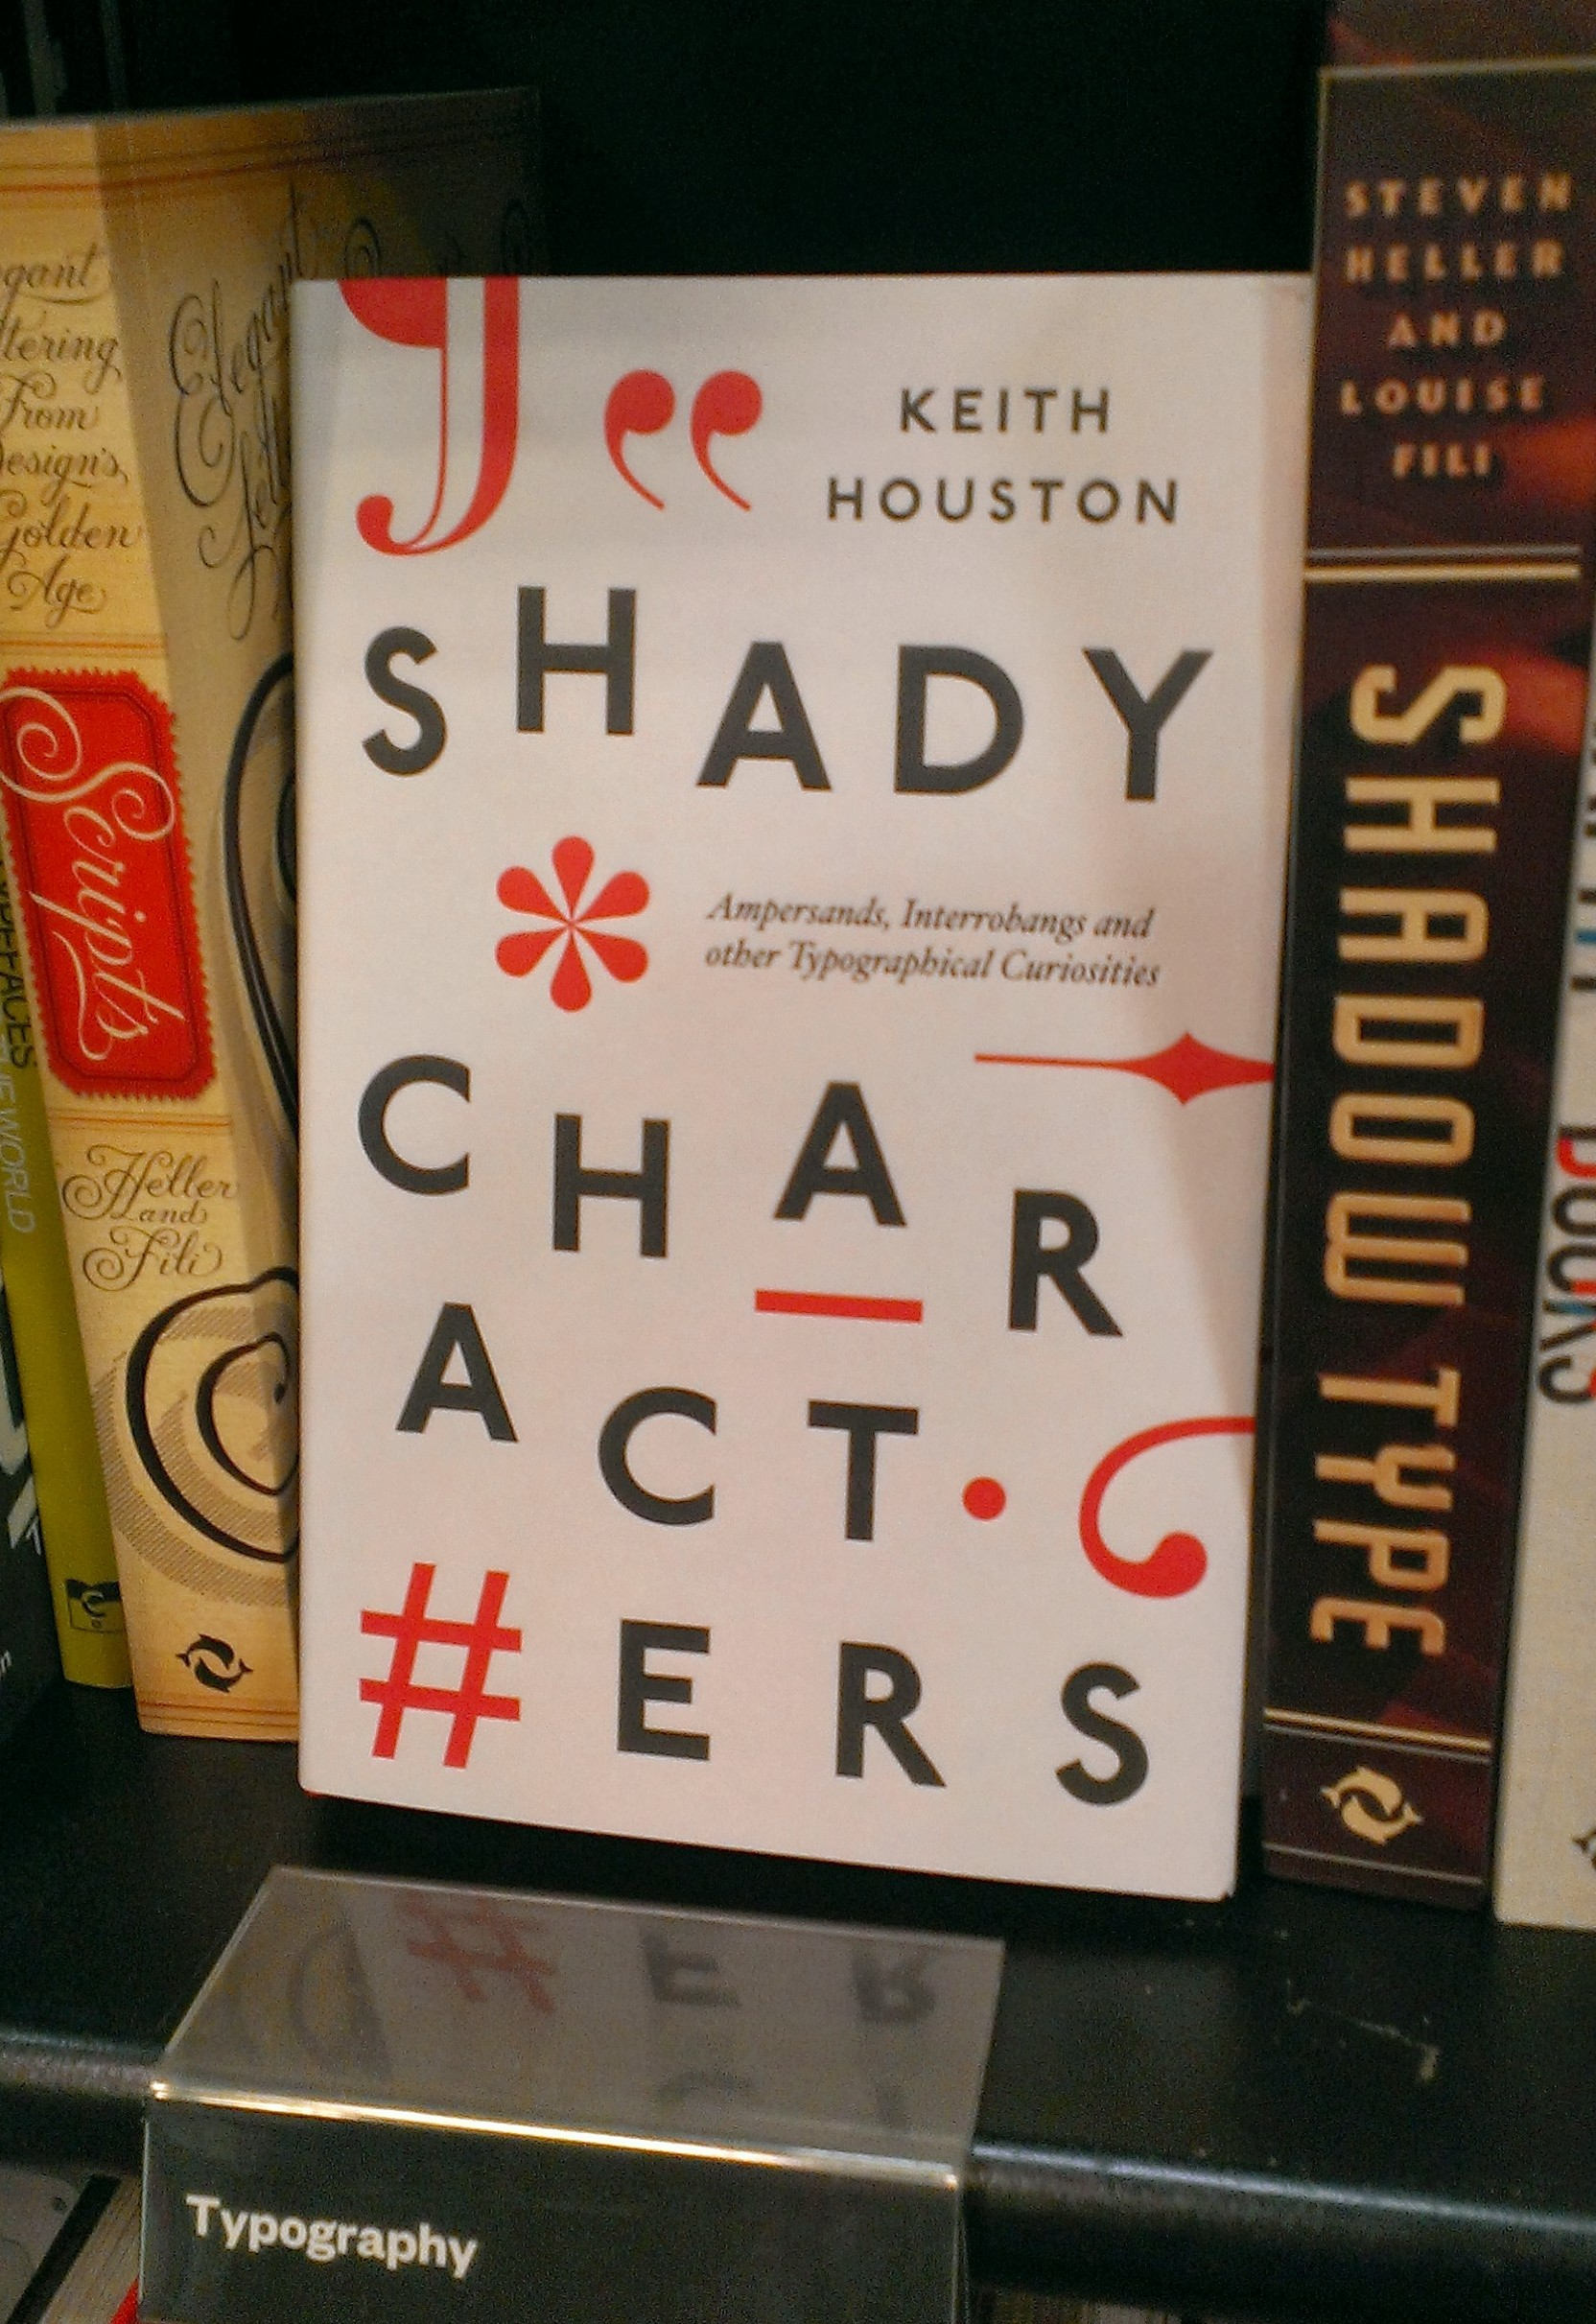 Shady Characters in Waterstones, Edinburgh. Picture by the author.